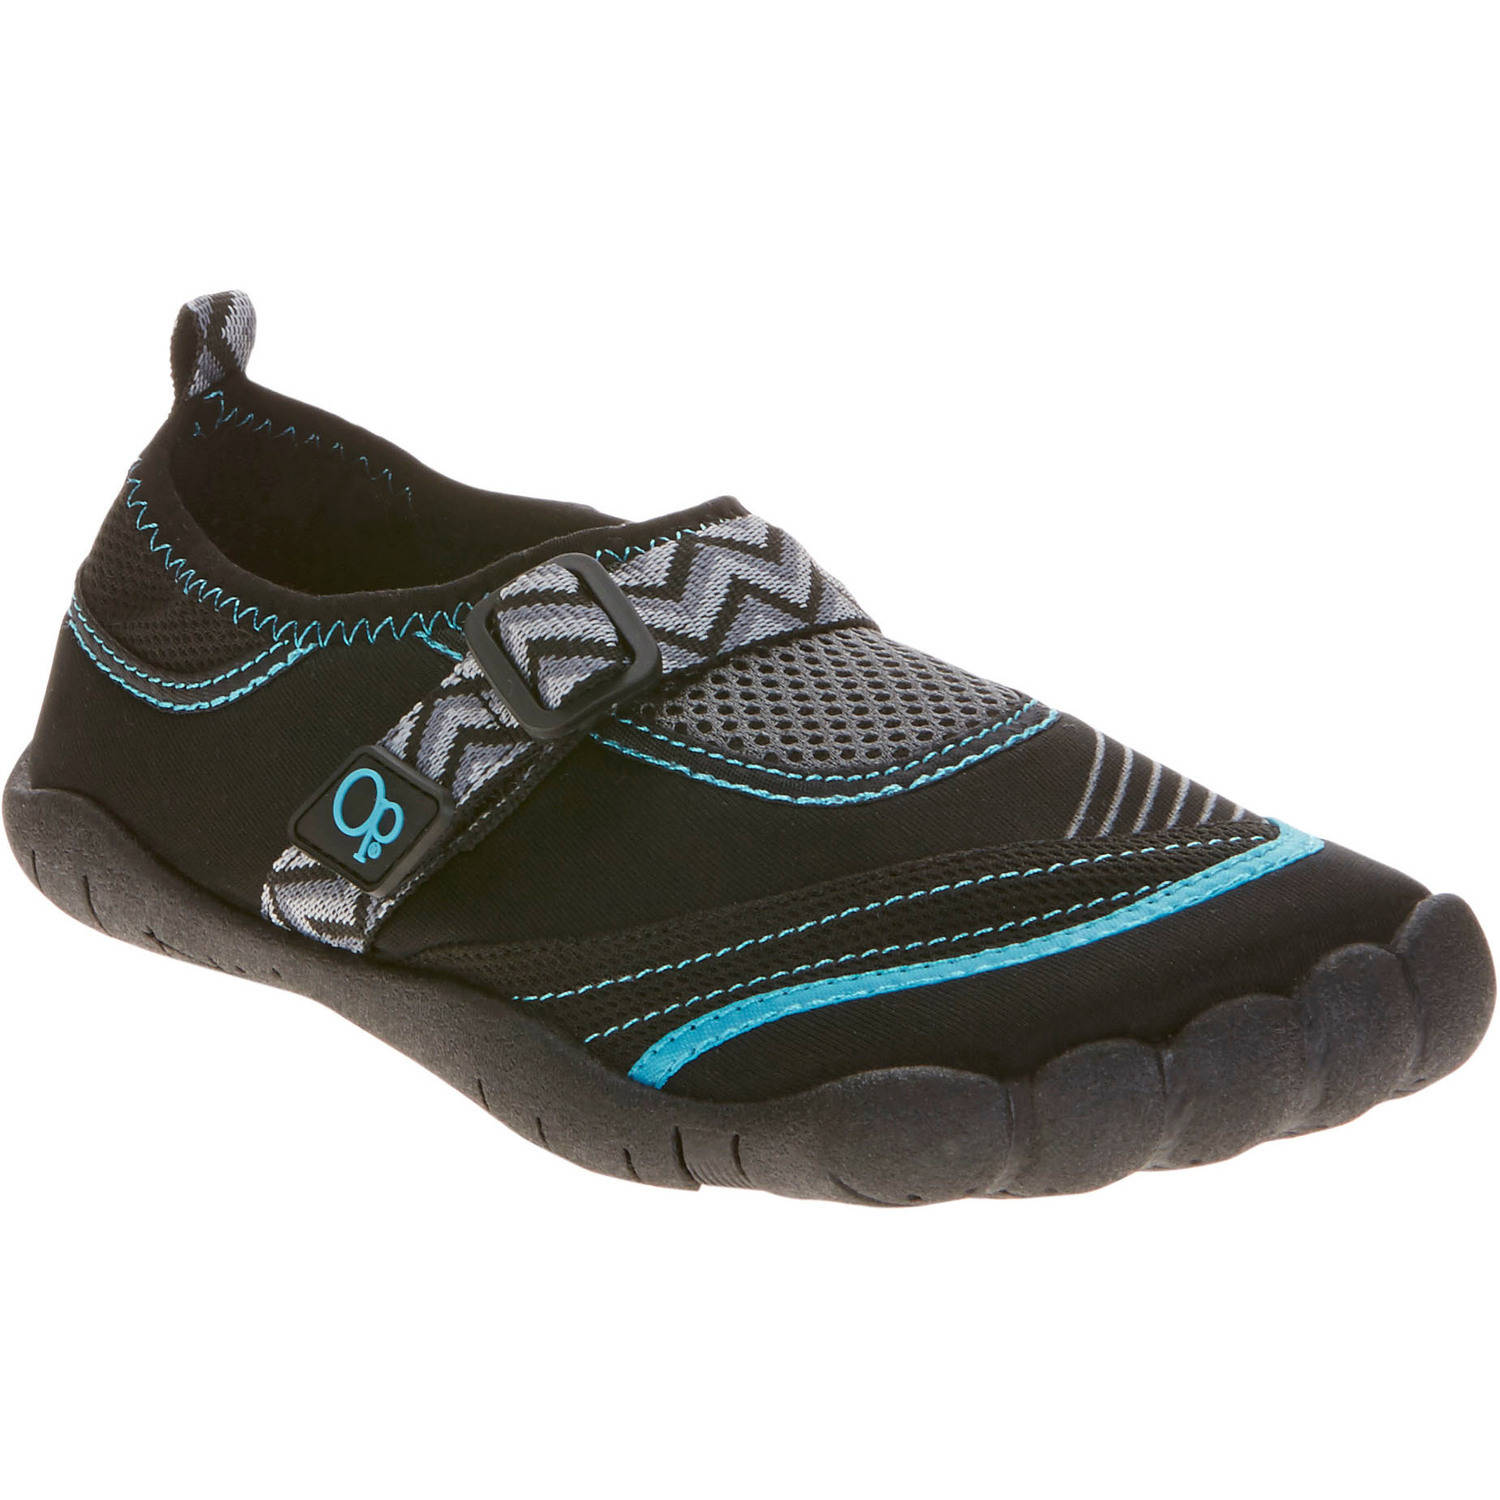 Op Op Mens Menhaten Water Shoe Walmart Com